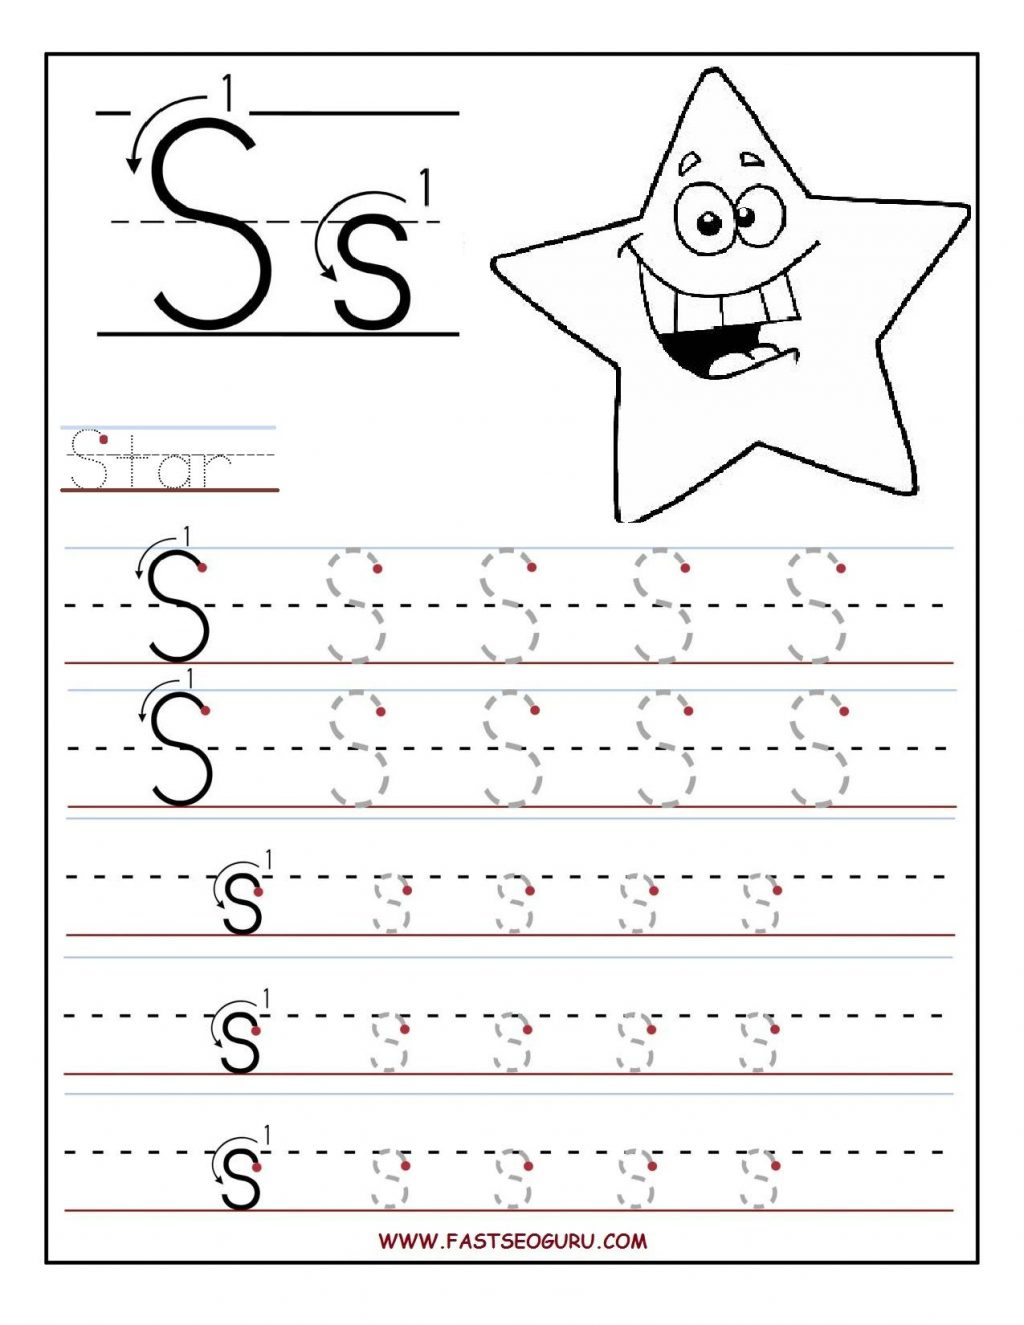 Printable Letter S Tracing Worksheets For Preschool Free within Tracing Letters Child's Name